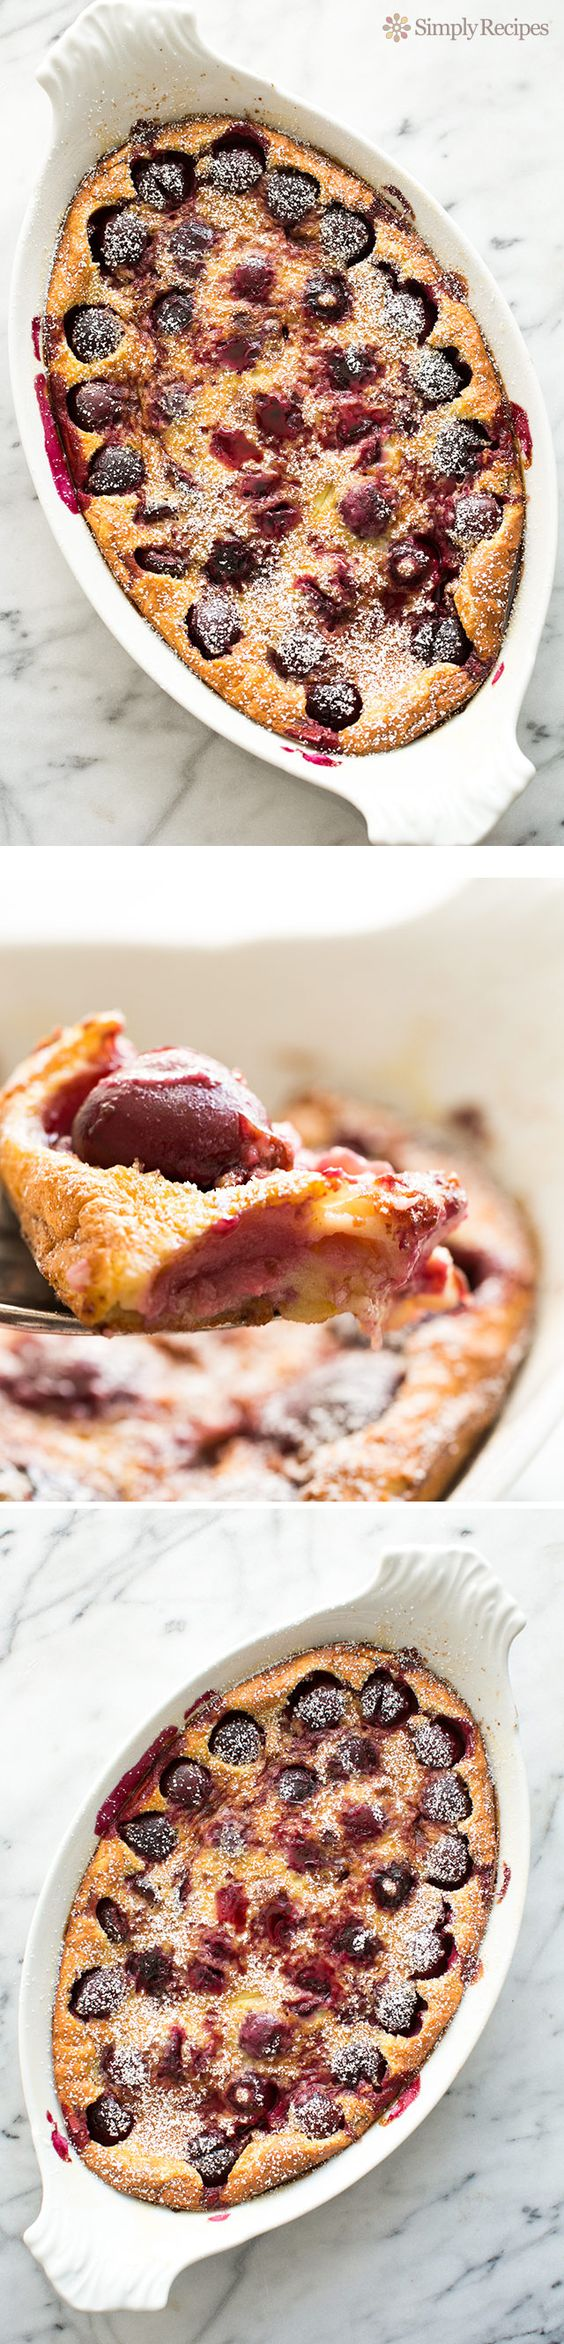 Cherry clafoutis, Cherries and Almonds on Pinterest